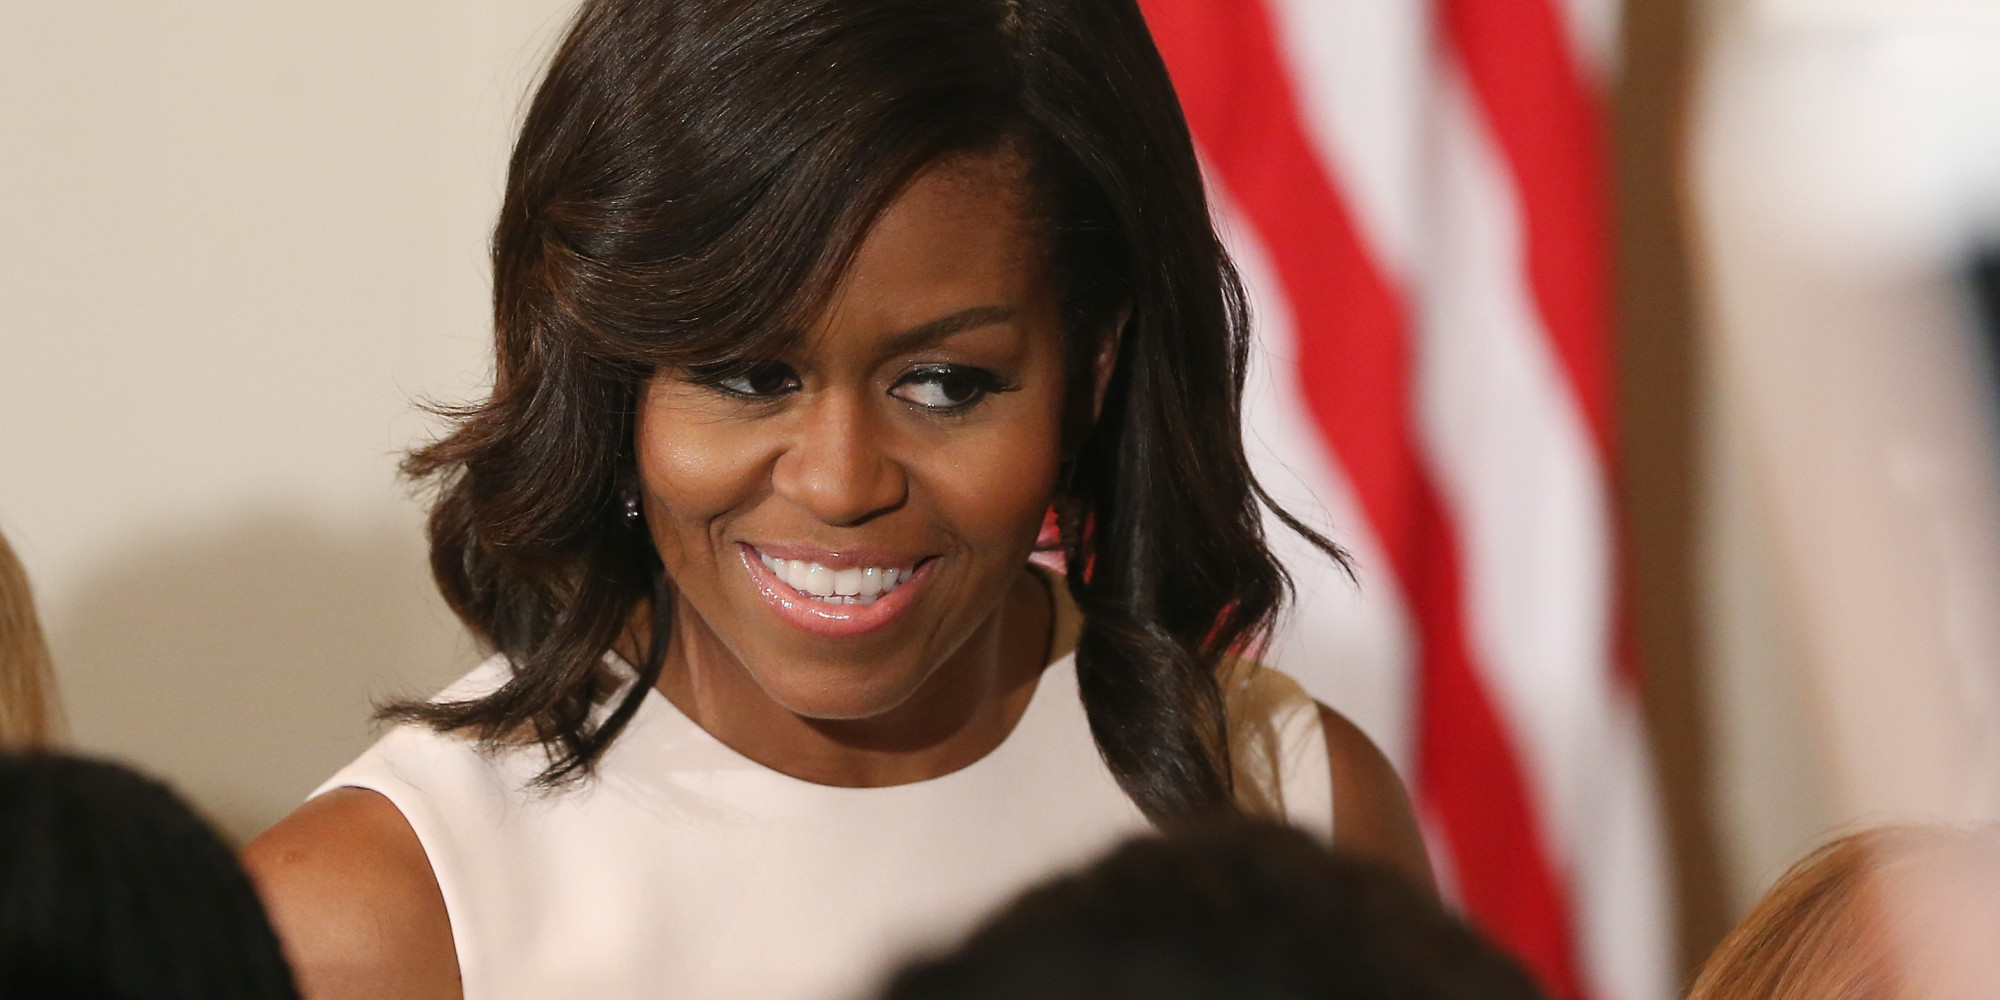 michelle obama's curly hair and more celebrity beauty looks we